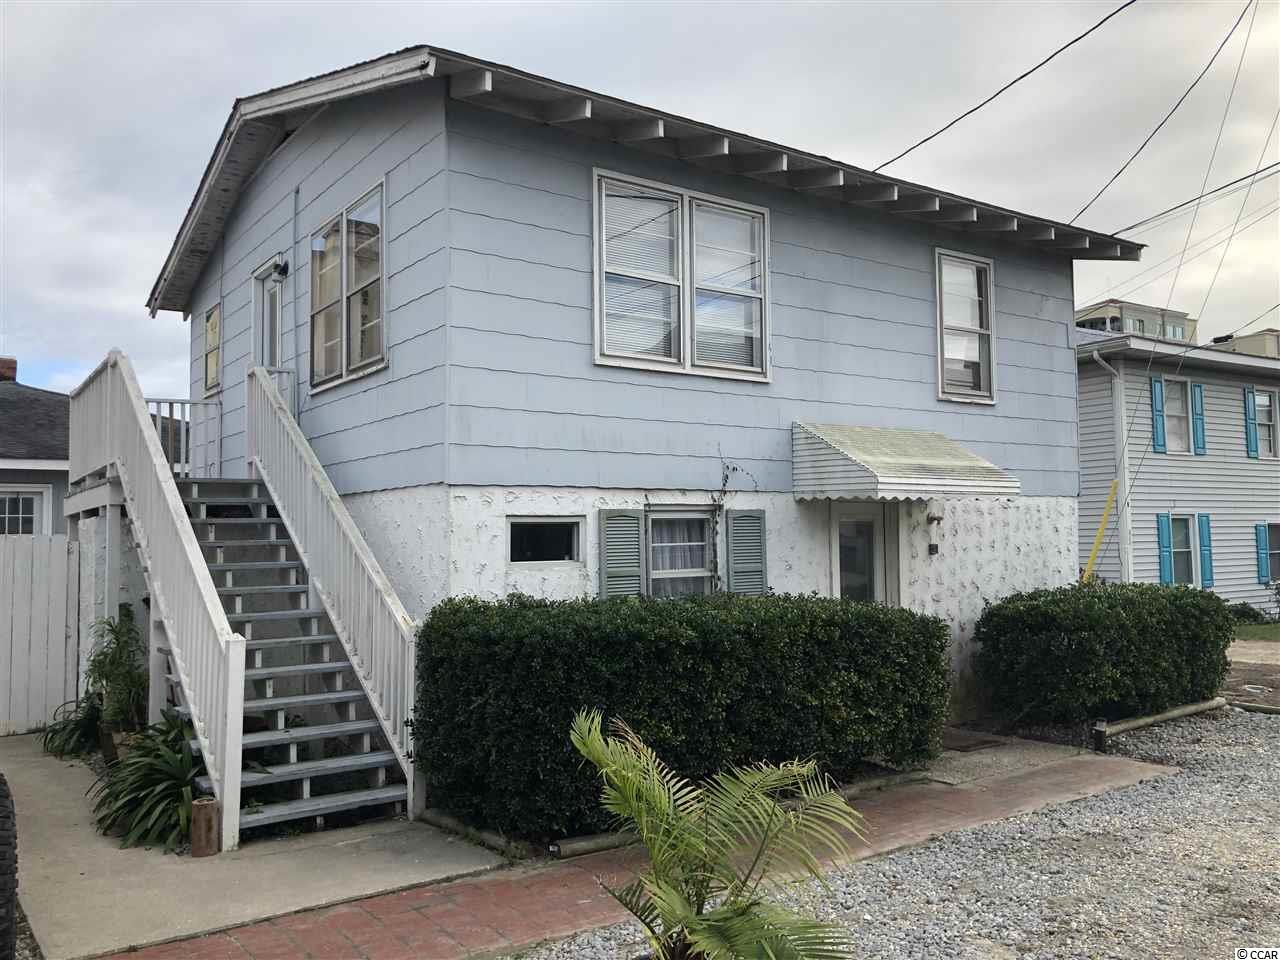 Check out this fully leased income producing triplex in the heart of North Myrtle Beach just a stones throw from the beach.  The street to street lot is located between Hillside Dr and Miller St in Ocean Drive.   There are 2 structures....the Hillside Dr structure is a 2 story, 2 bedroom home.  Theres a large living room, kitchen and bathroom downstairs, and 2 spacious bedrooms and a full bath upstairs.  The Miller St structure is a single story home with 2 dwellings.  Each dwelling features 2 bedrooms and 1 full bath.  There is a shared courtyard with lots of privacy and charm.  This property would be perfect for short term, weekly rentals or long term annual rentals.   This is the perfect location, being only one block from the beach and just a few shorts block from Main St and all the area has to offer.